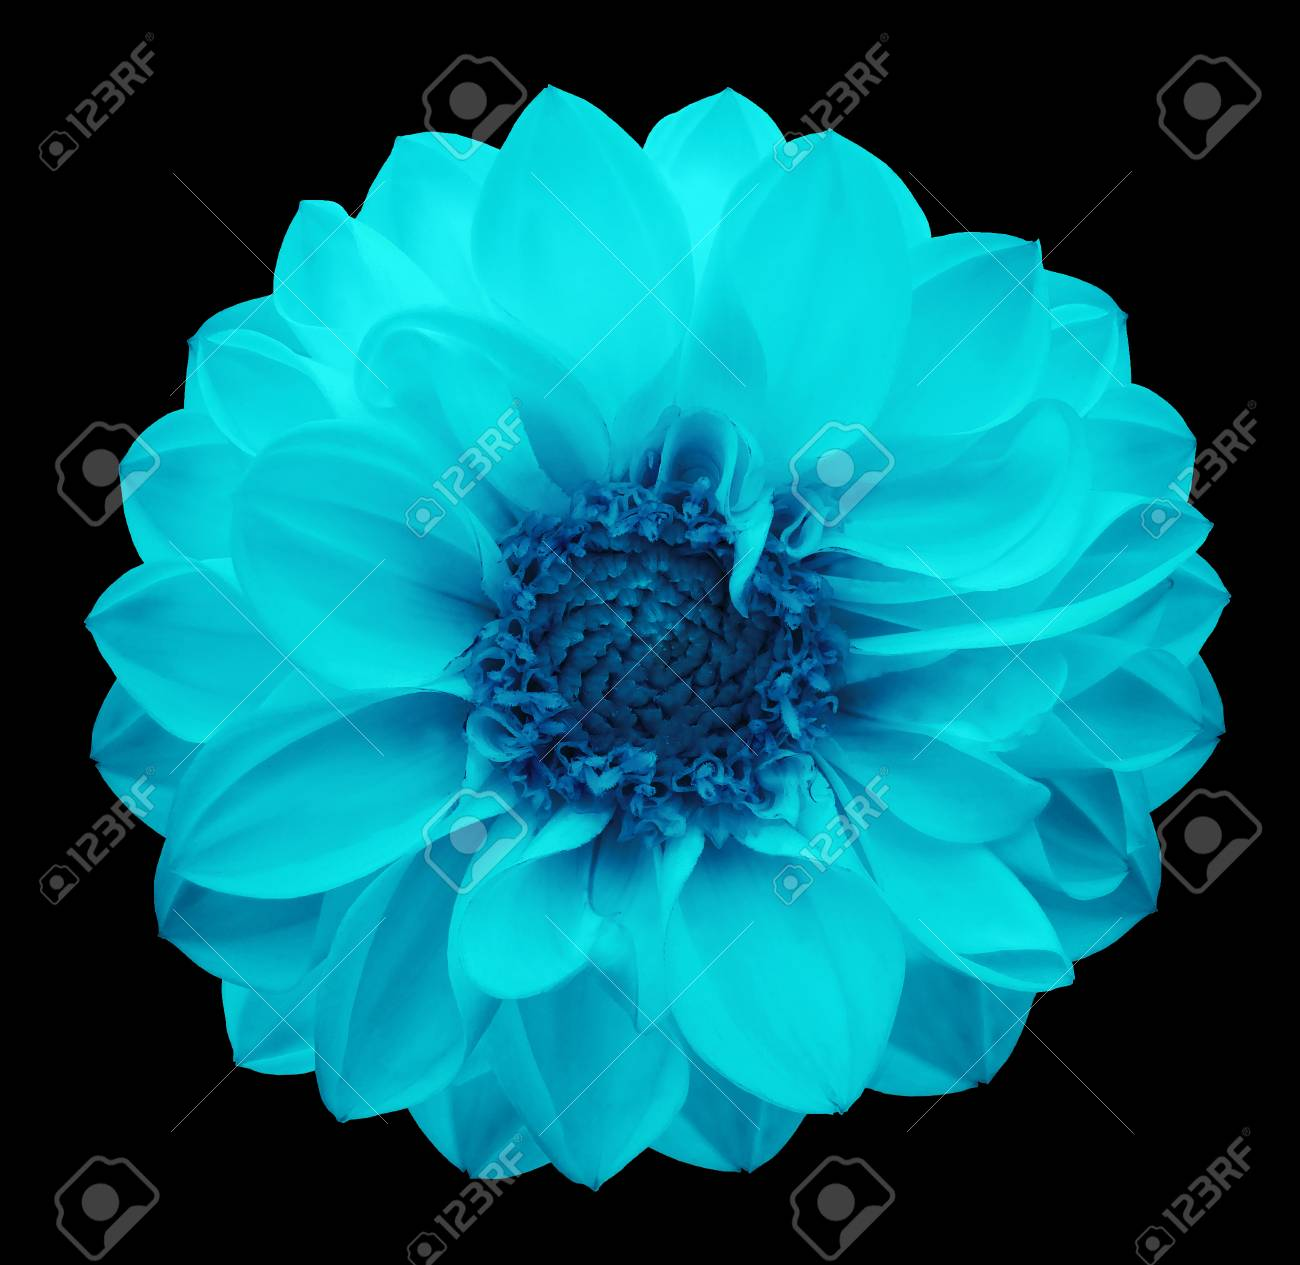 Spring Turquoise Blue Flower Dahlia On The Black Isolated Background